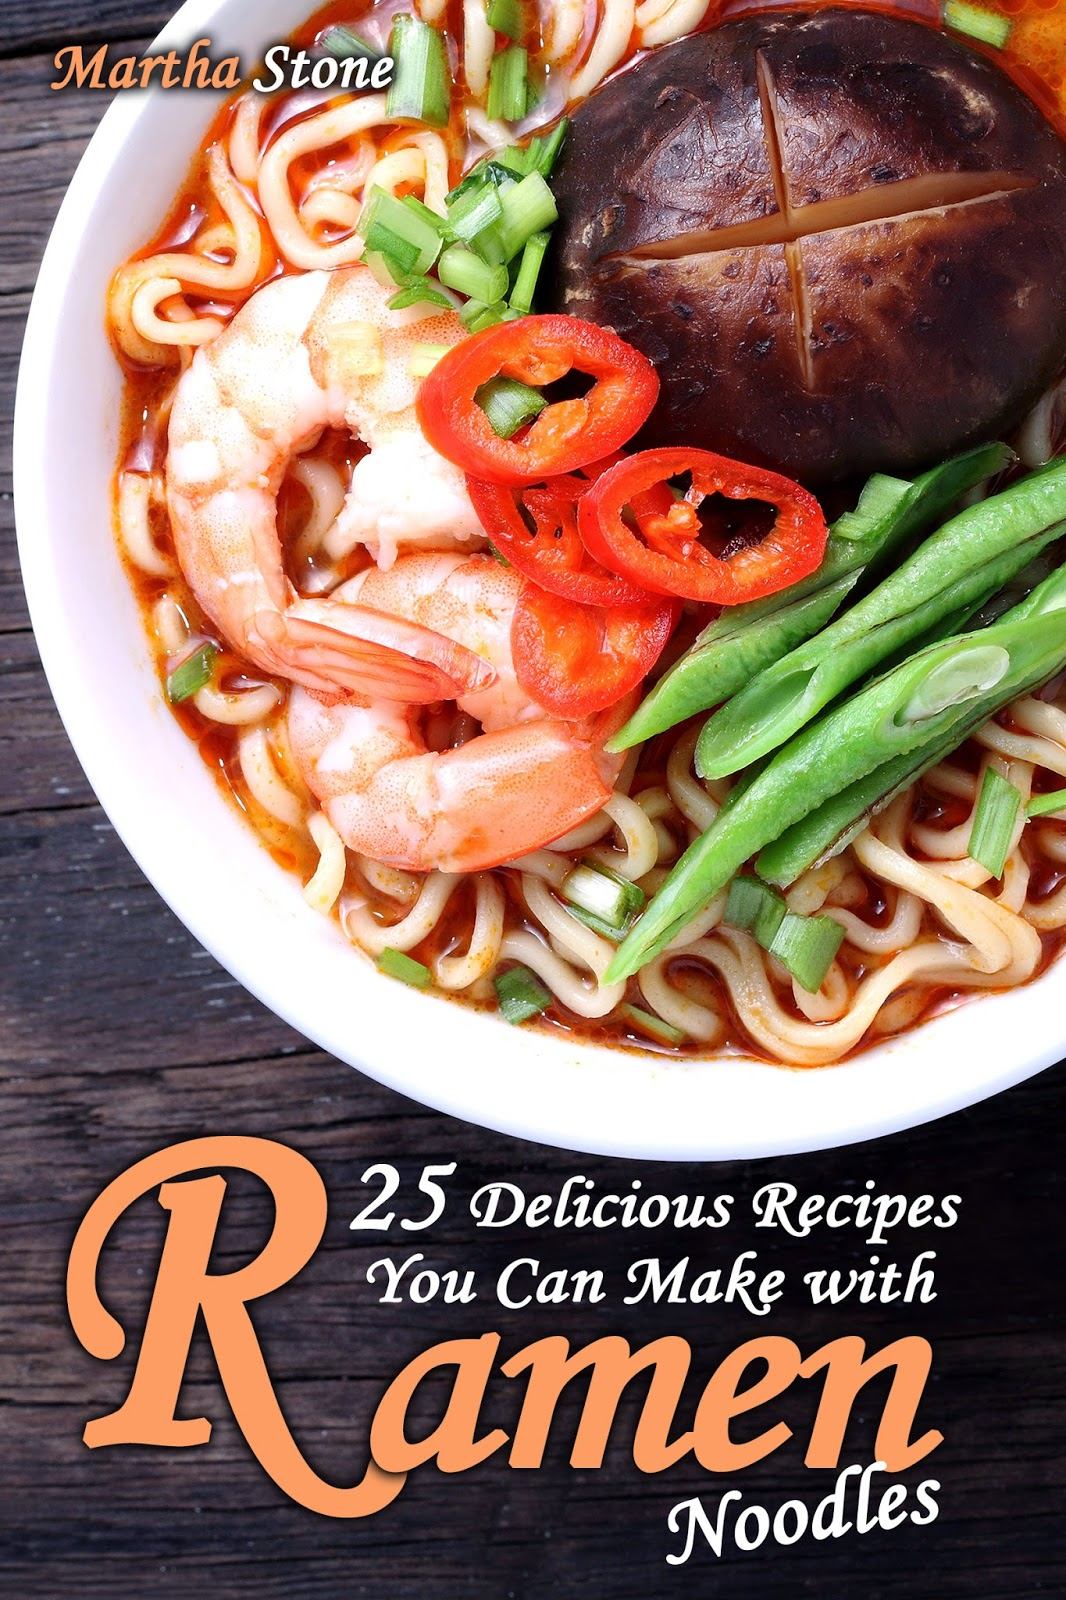 http://www.amazon.com/Delicious-Recipes-Make-Ramen-Noodles-ebook/dp/B00MWZMTZK/